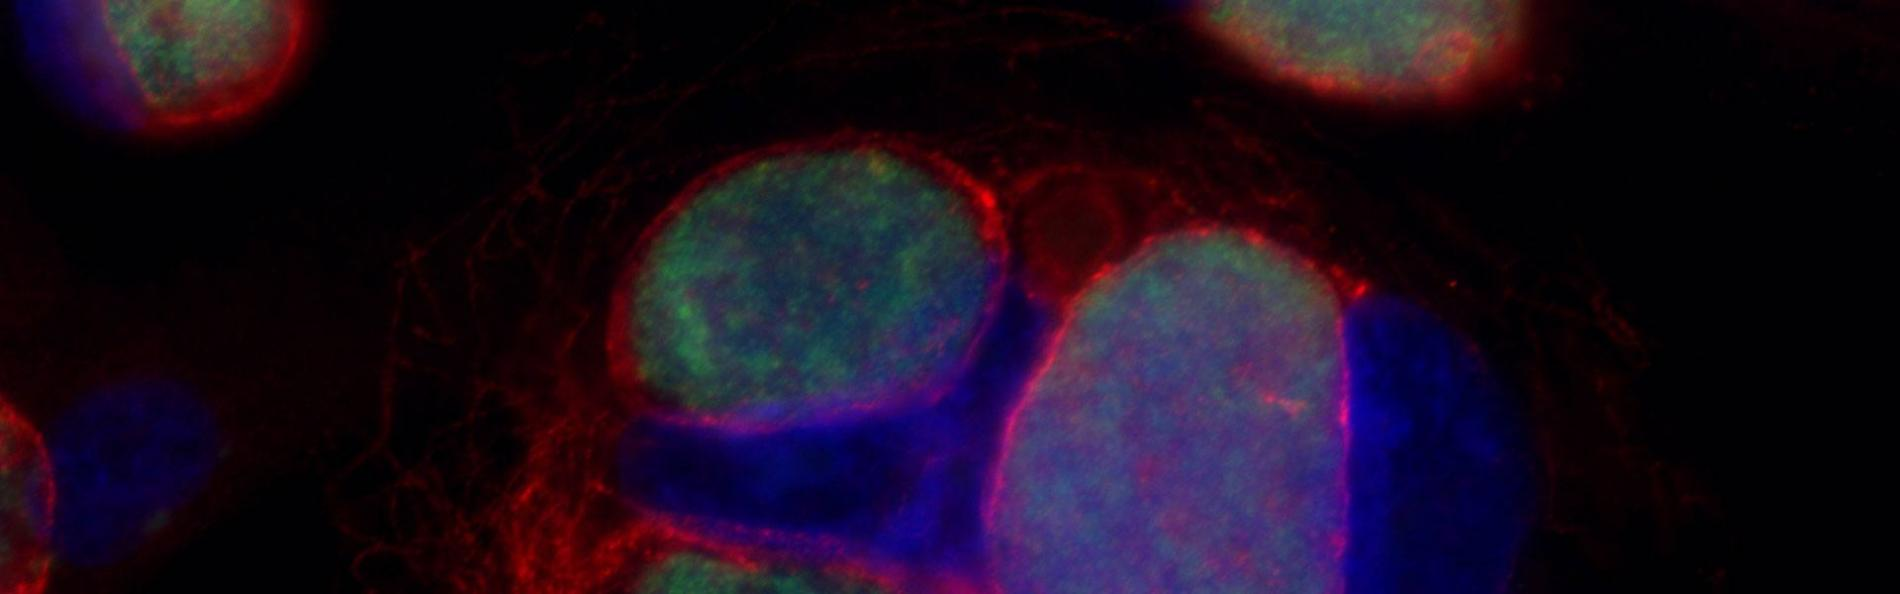 Immunofluorescence microscopy of primary human cervical cells infected with Chlamydia trachomatis from the Mary Weber lab